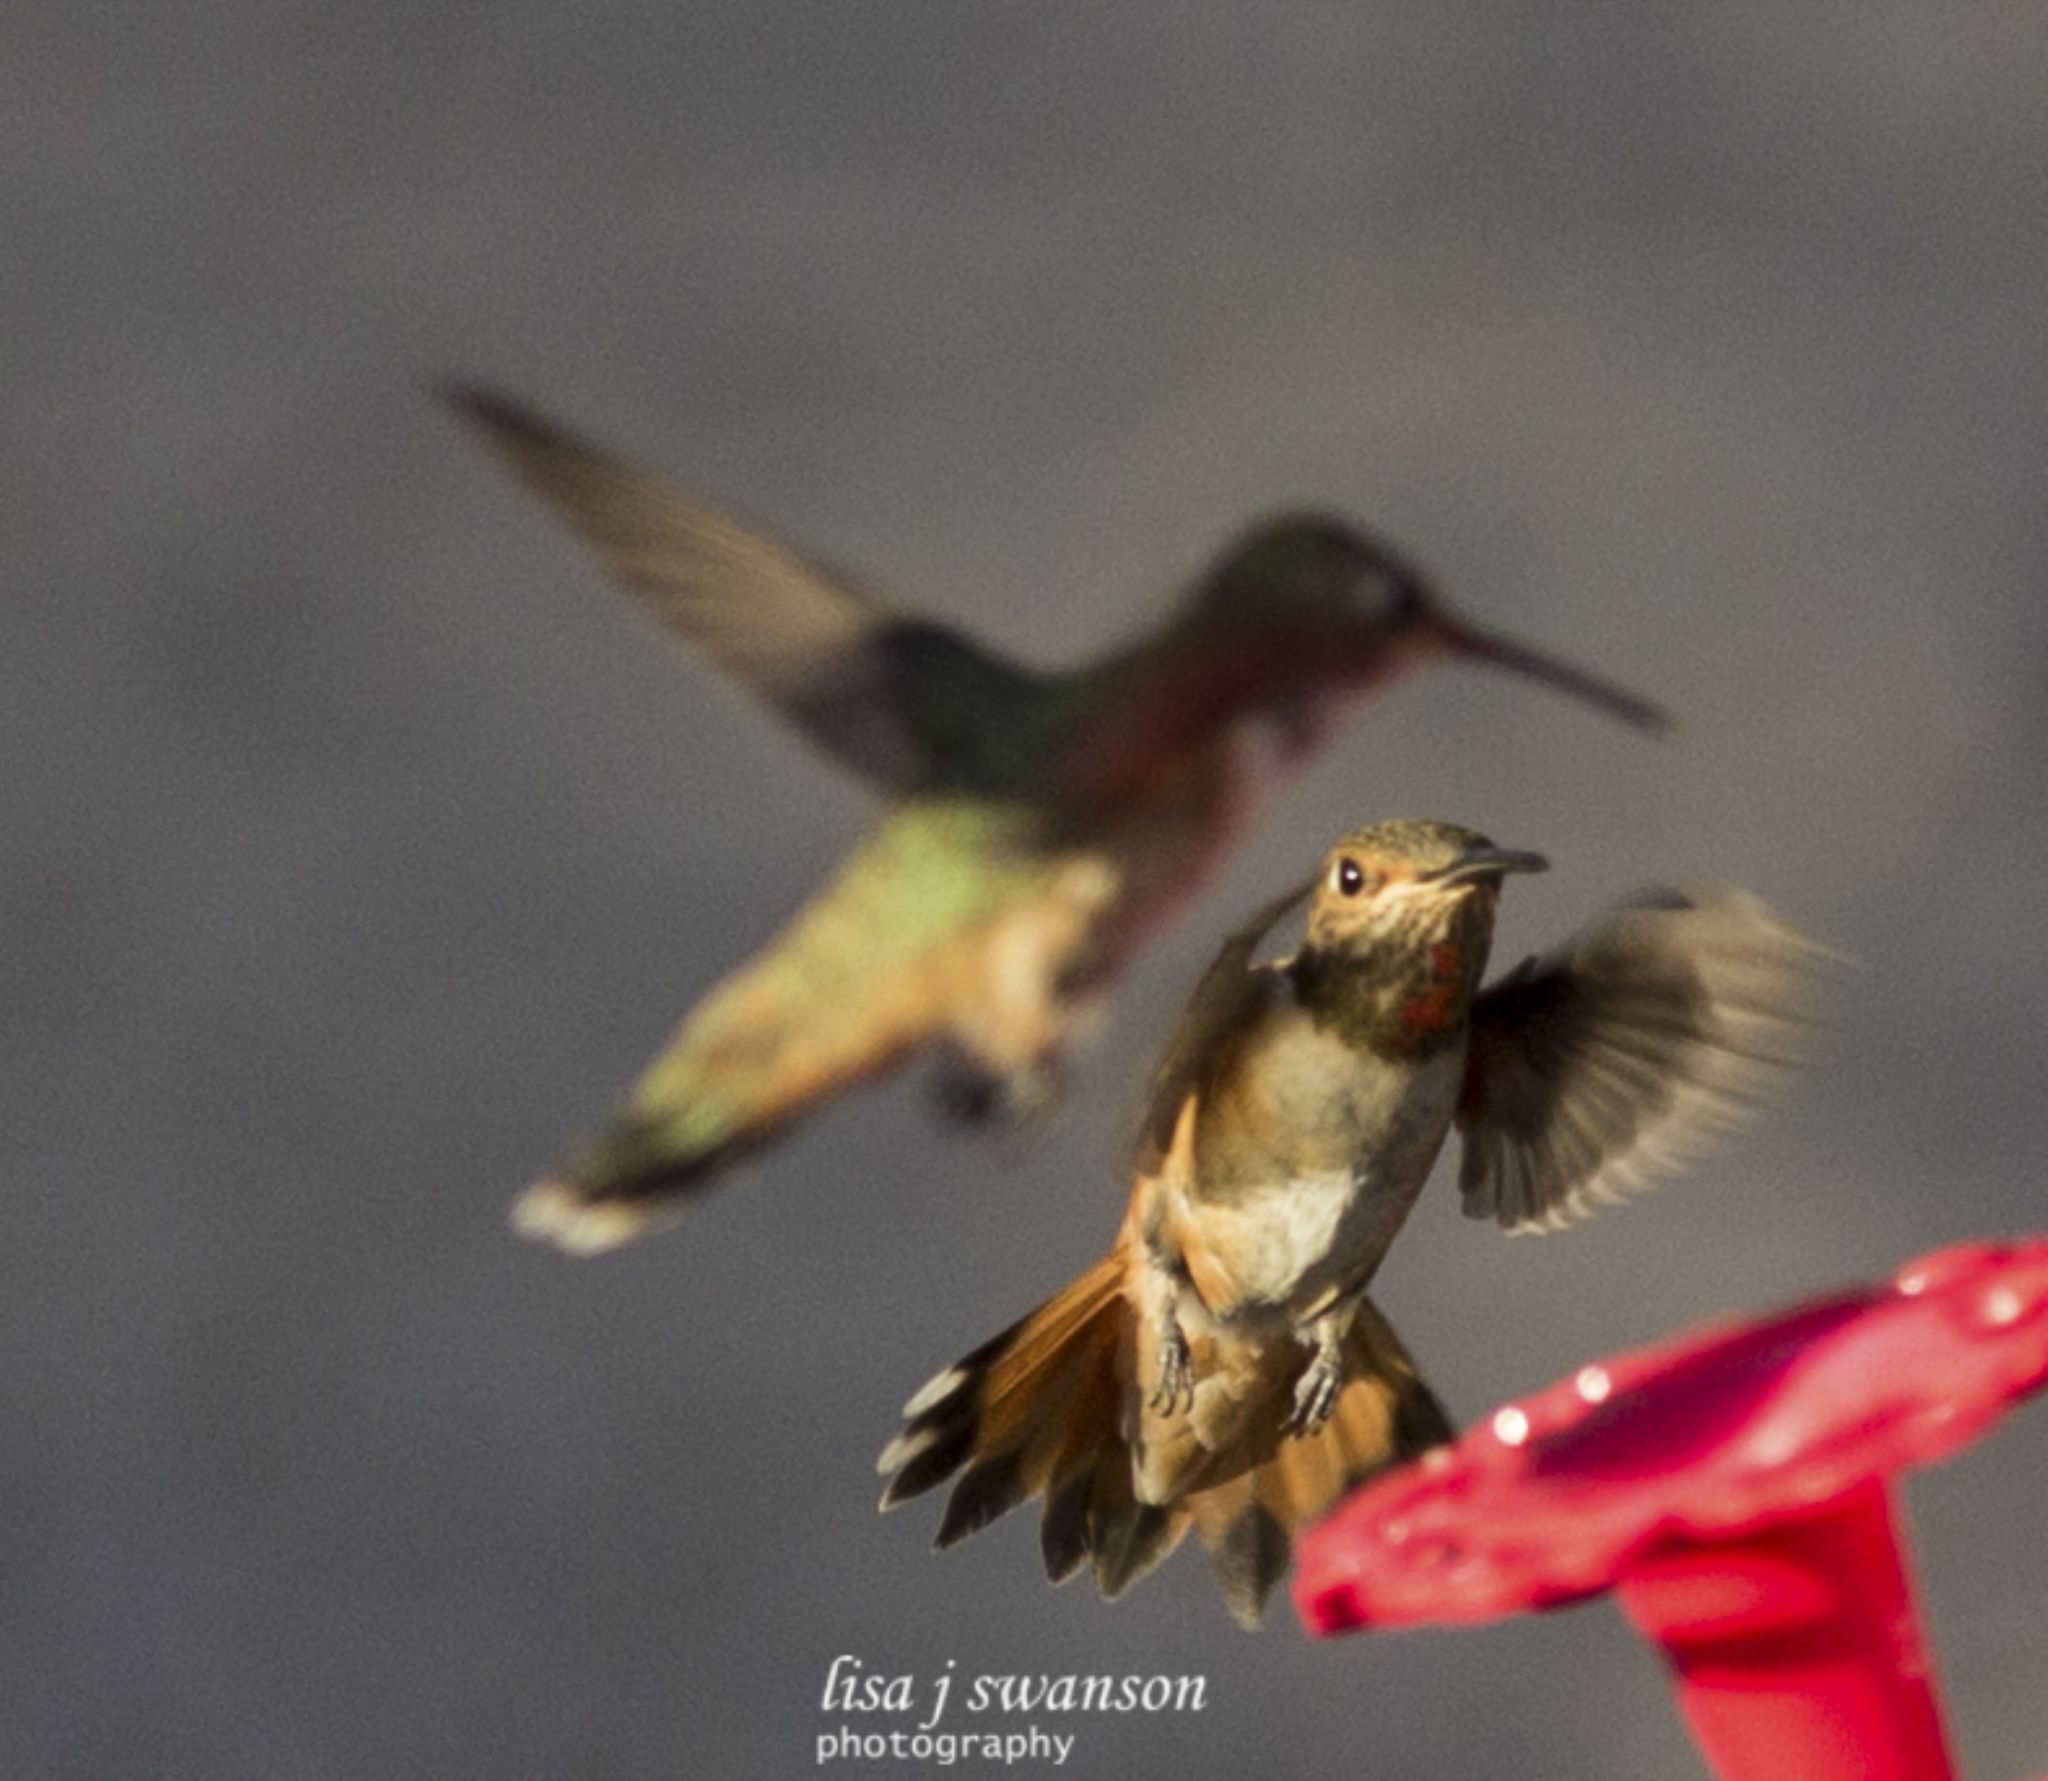 Fight for the feeder by lisa.meyersswanson